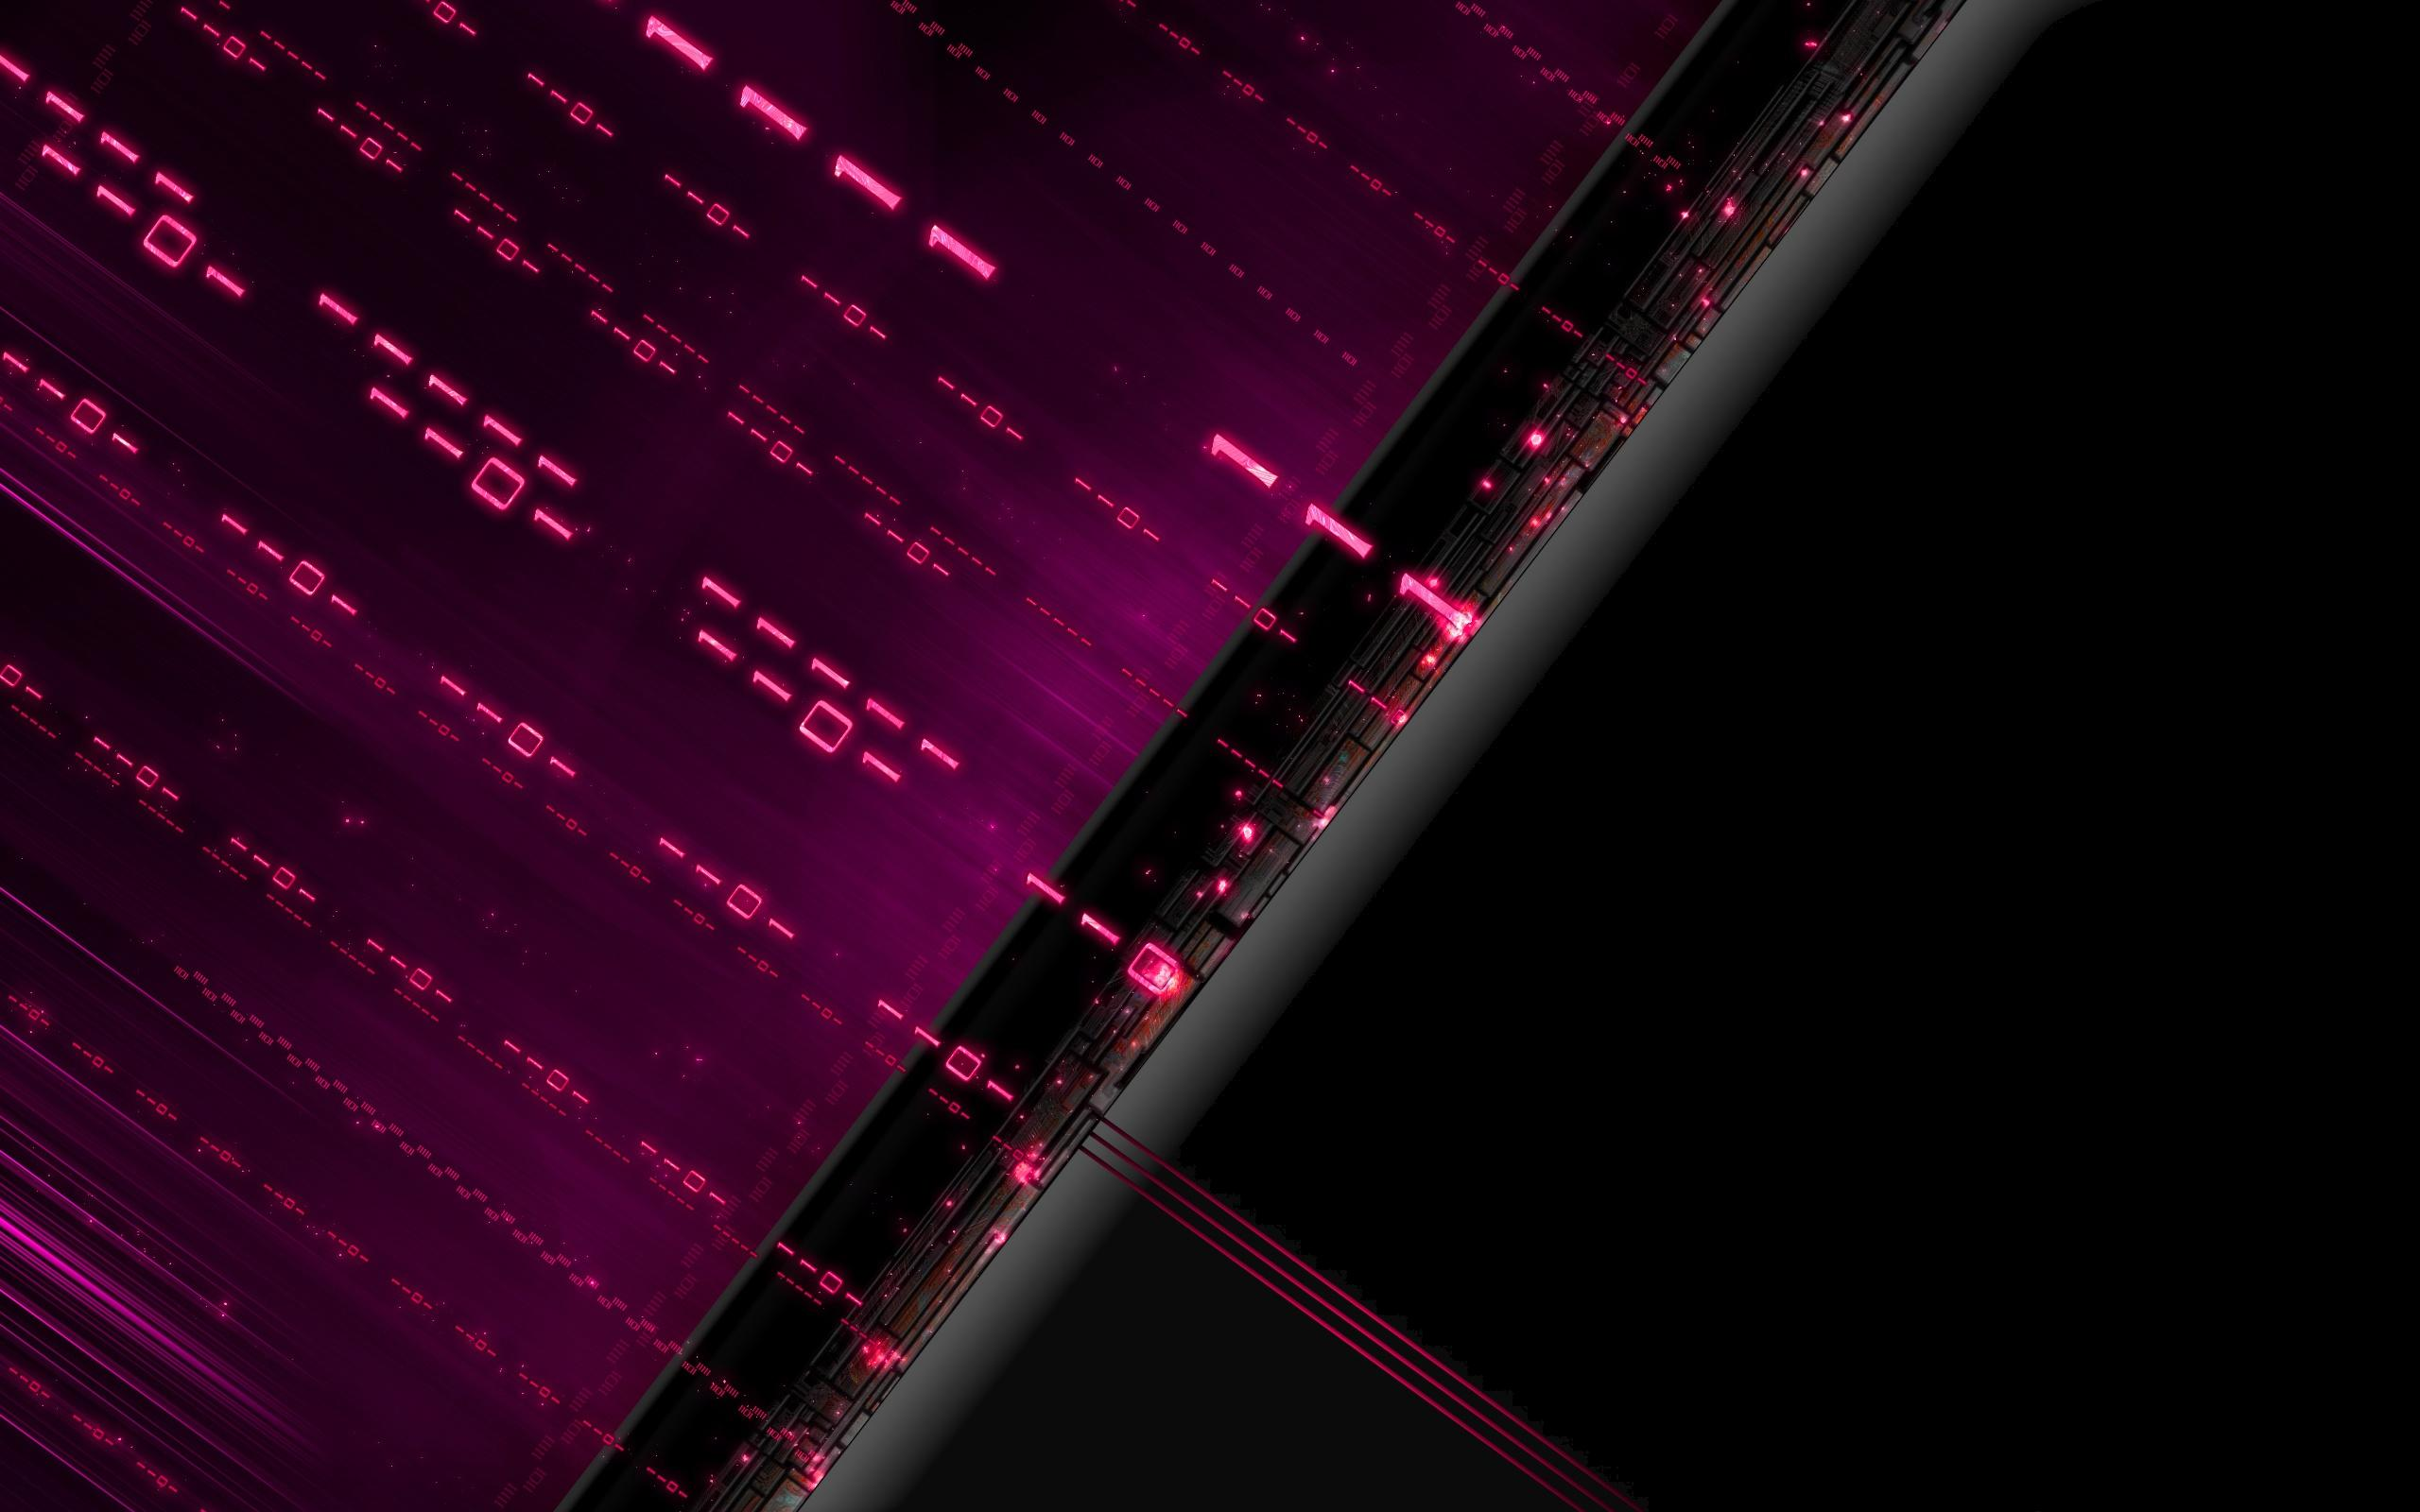 Binary wallpapers pictures images - Wallpaper stills ...